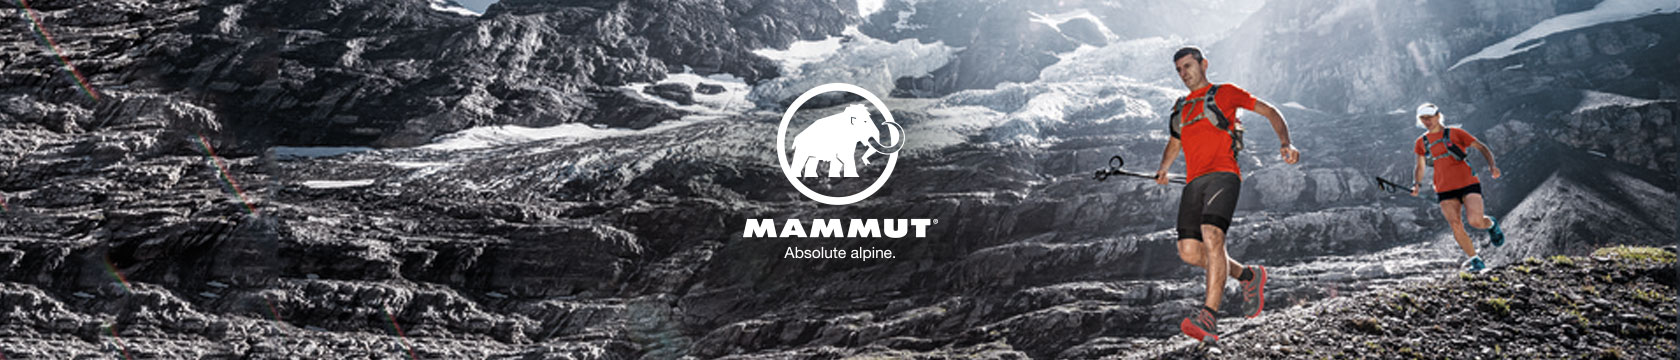 Man and woman running with Mammut gear.